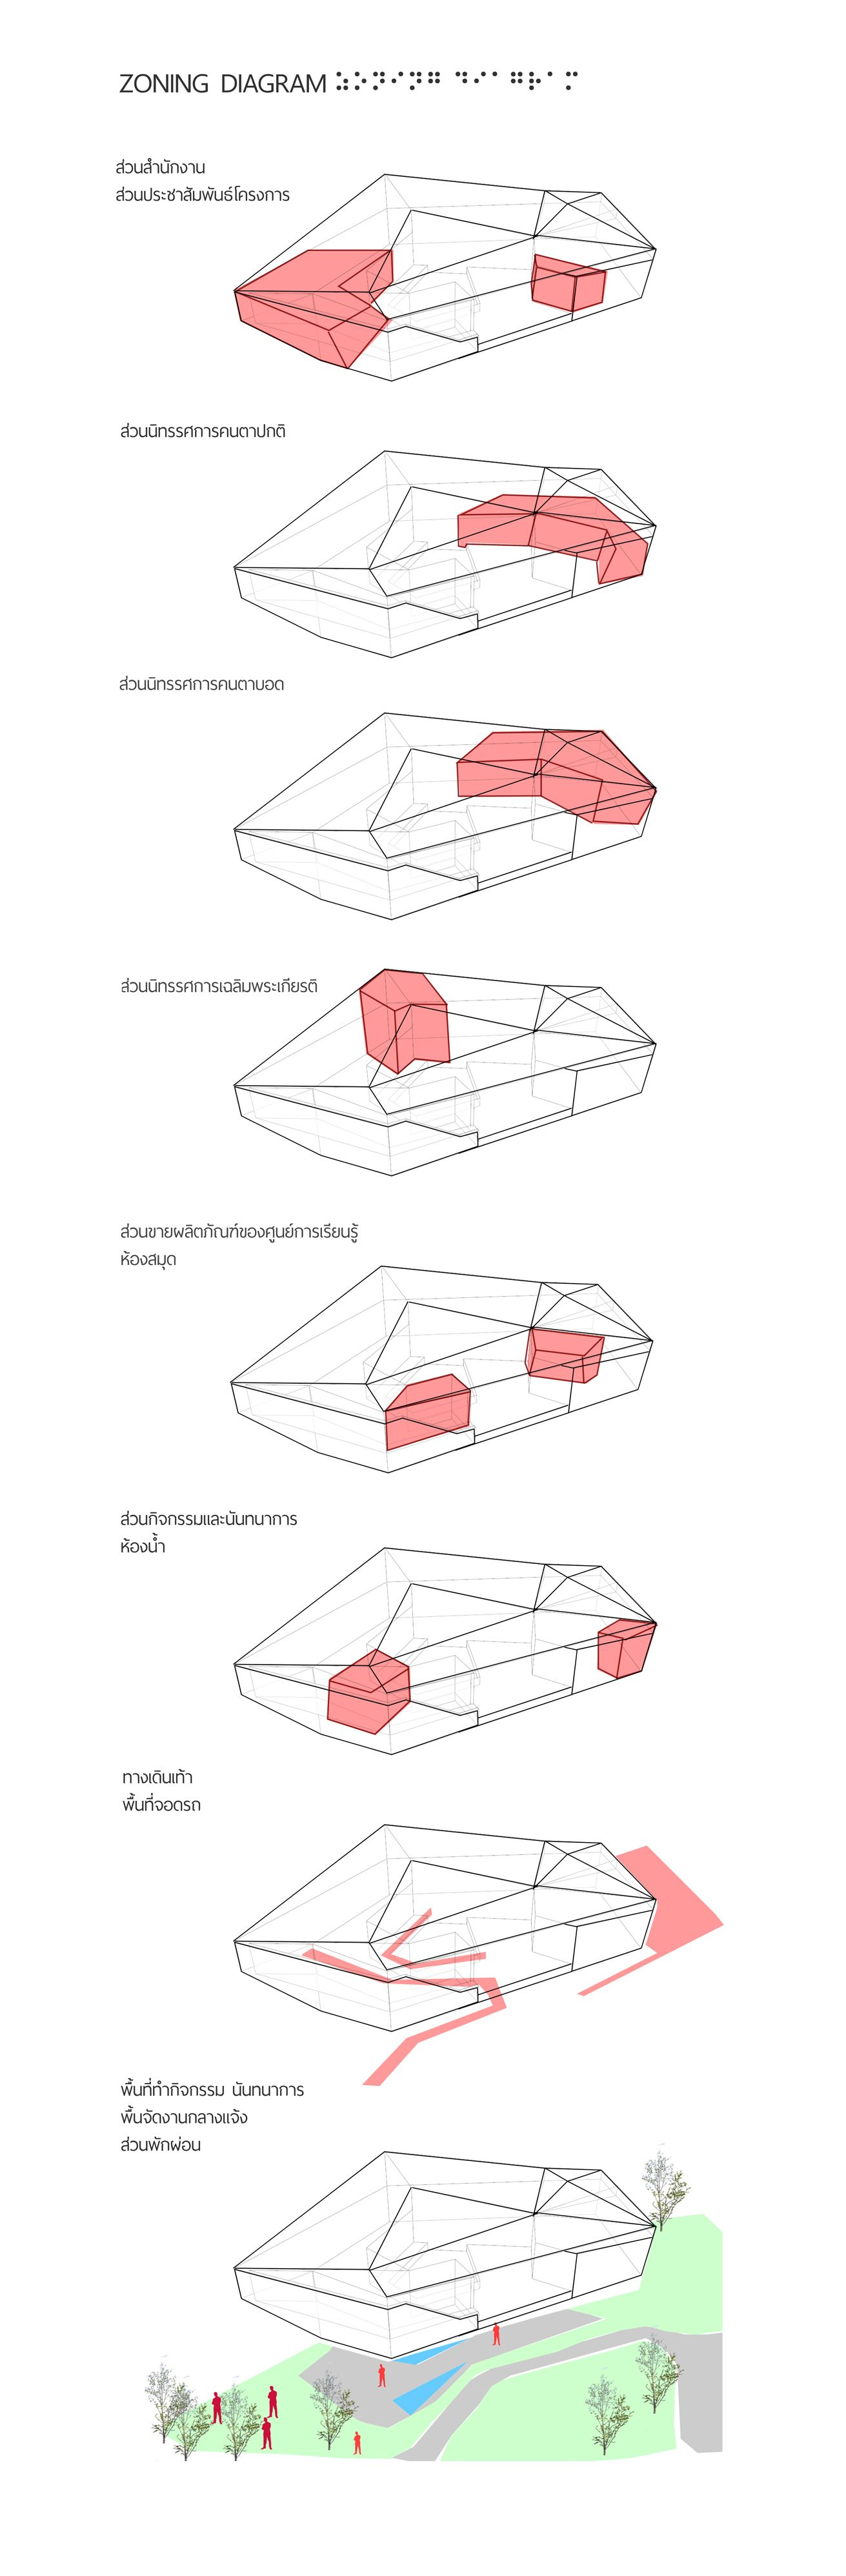 Zoning diagram thesis architecture pinterest for Architecture zoning diagram